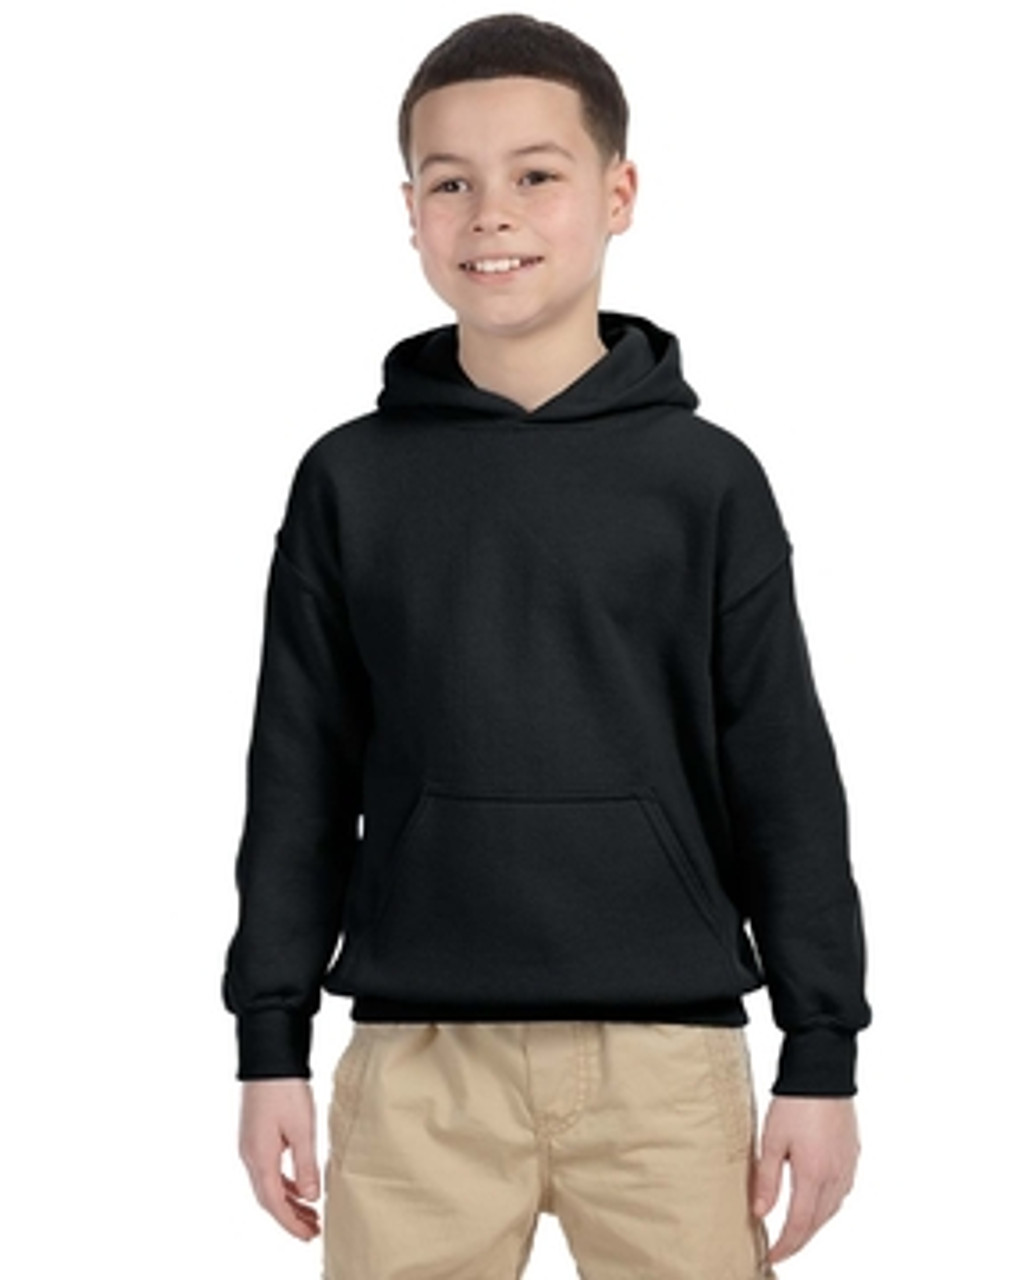 Black - G185B Gildan Heavy Blend Youth 50/50 Hoodie | Blankclothing.ca